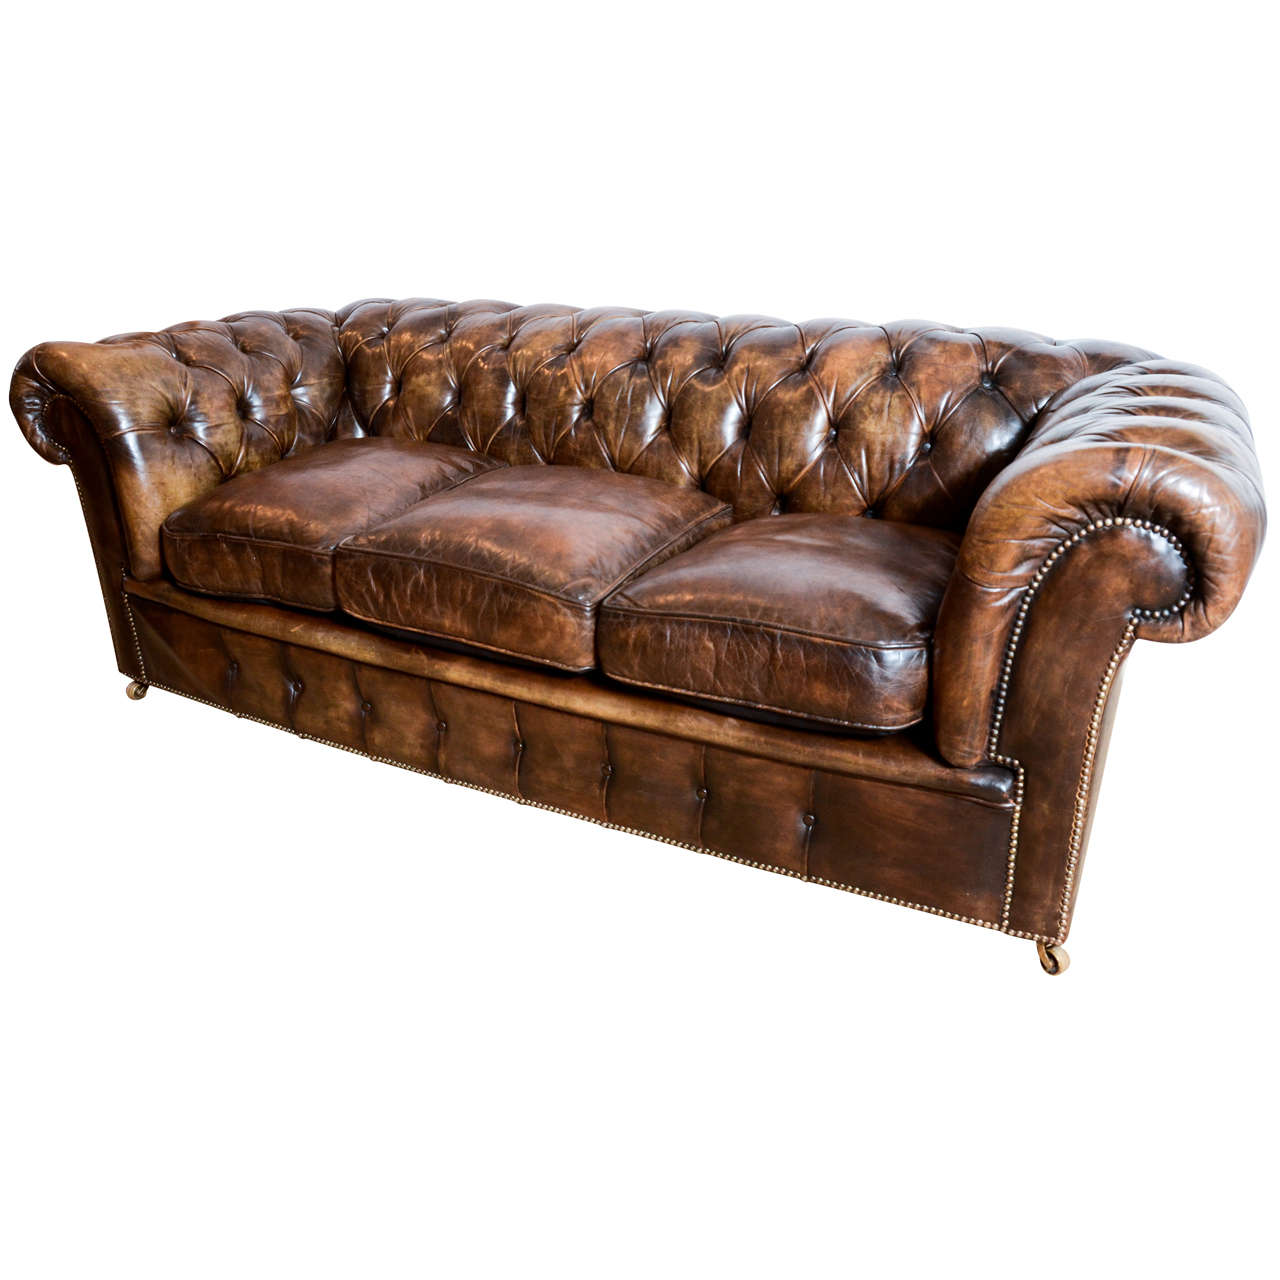 montauk sofas decorating around red leather sofa 1920's english upholstered chesterfield